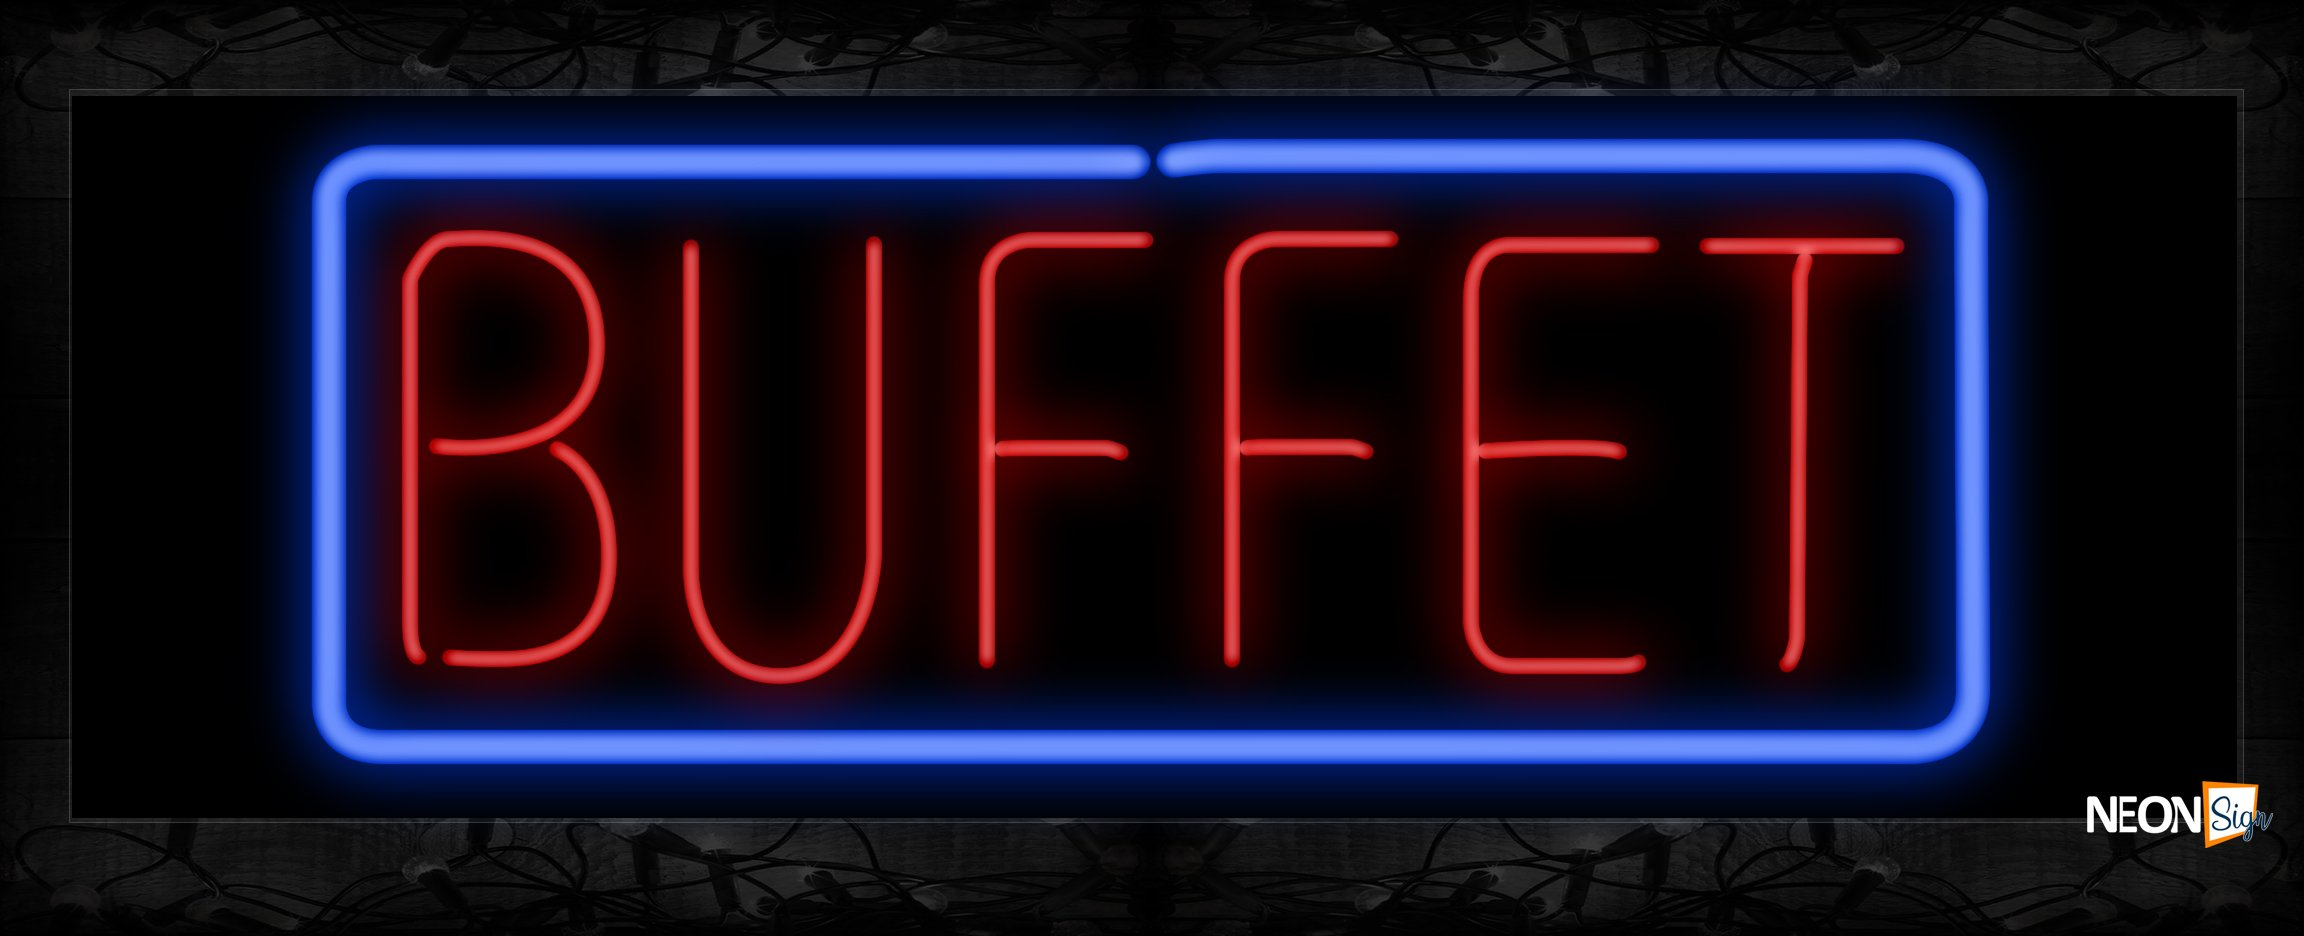 Image of 10183 Buffet in red with blue border Neon Sign 13x32 Black Backing